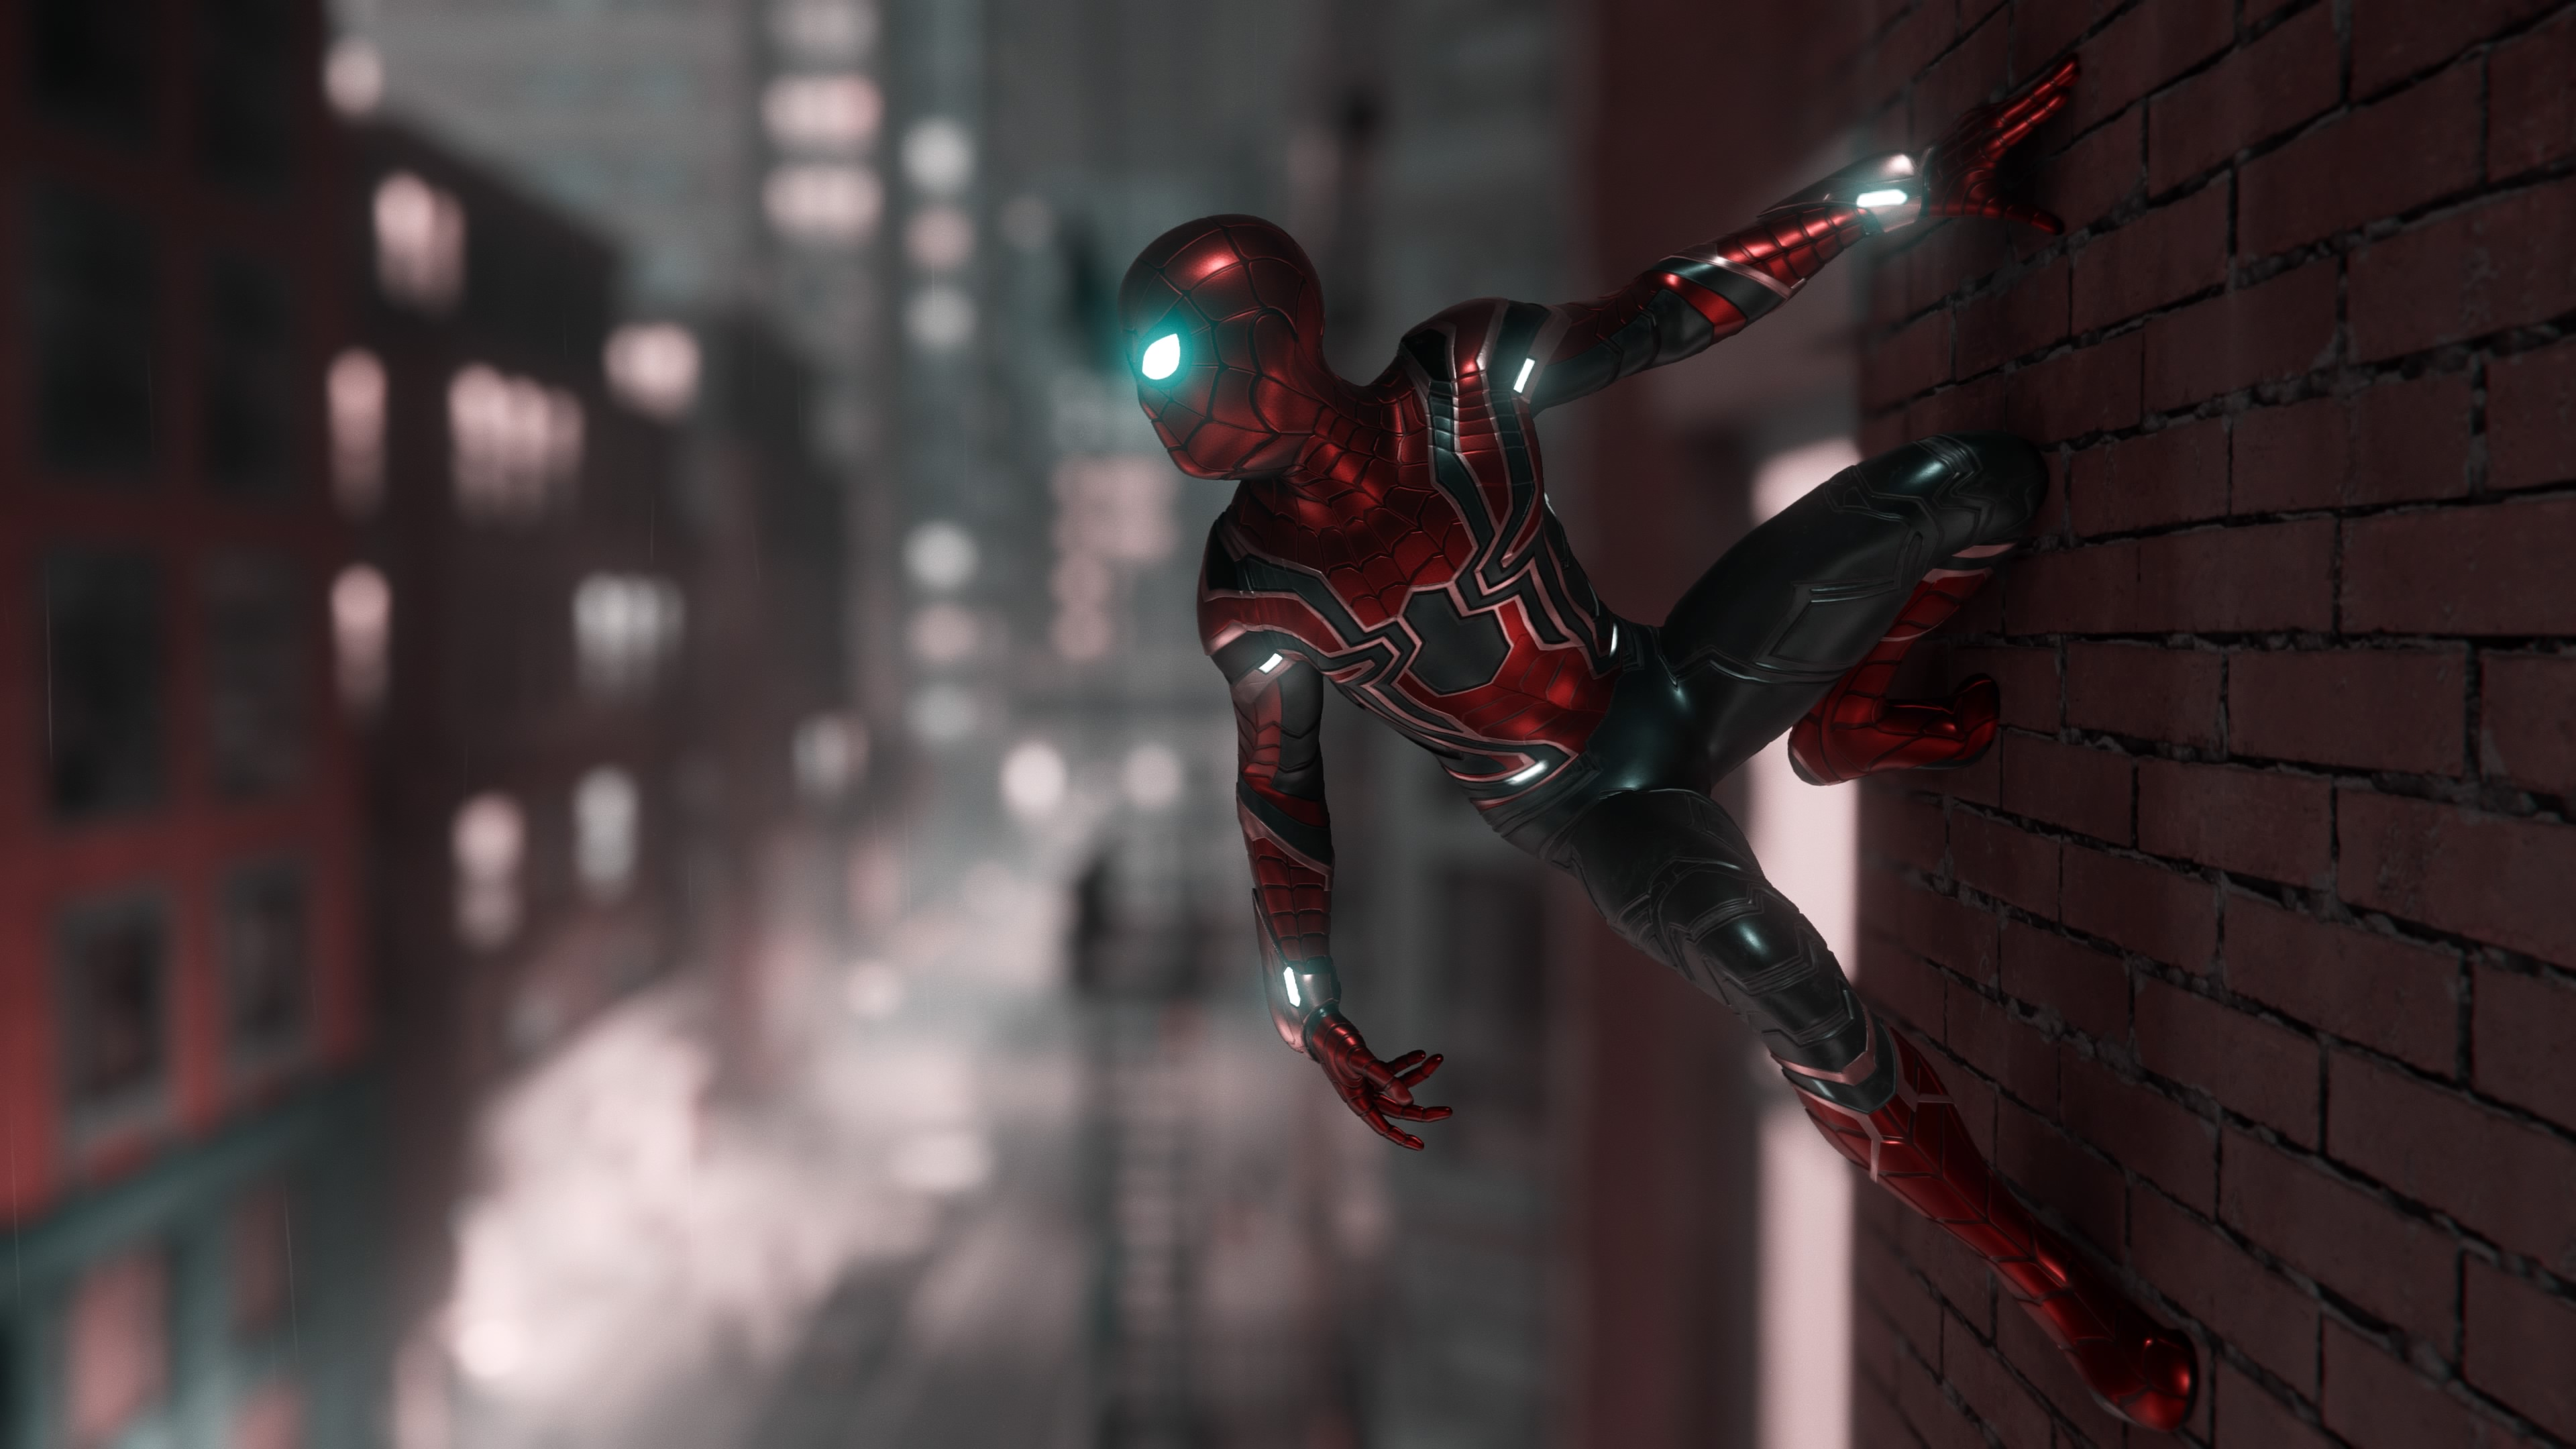 Wallpaper Spiderman in the city